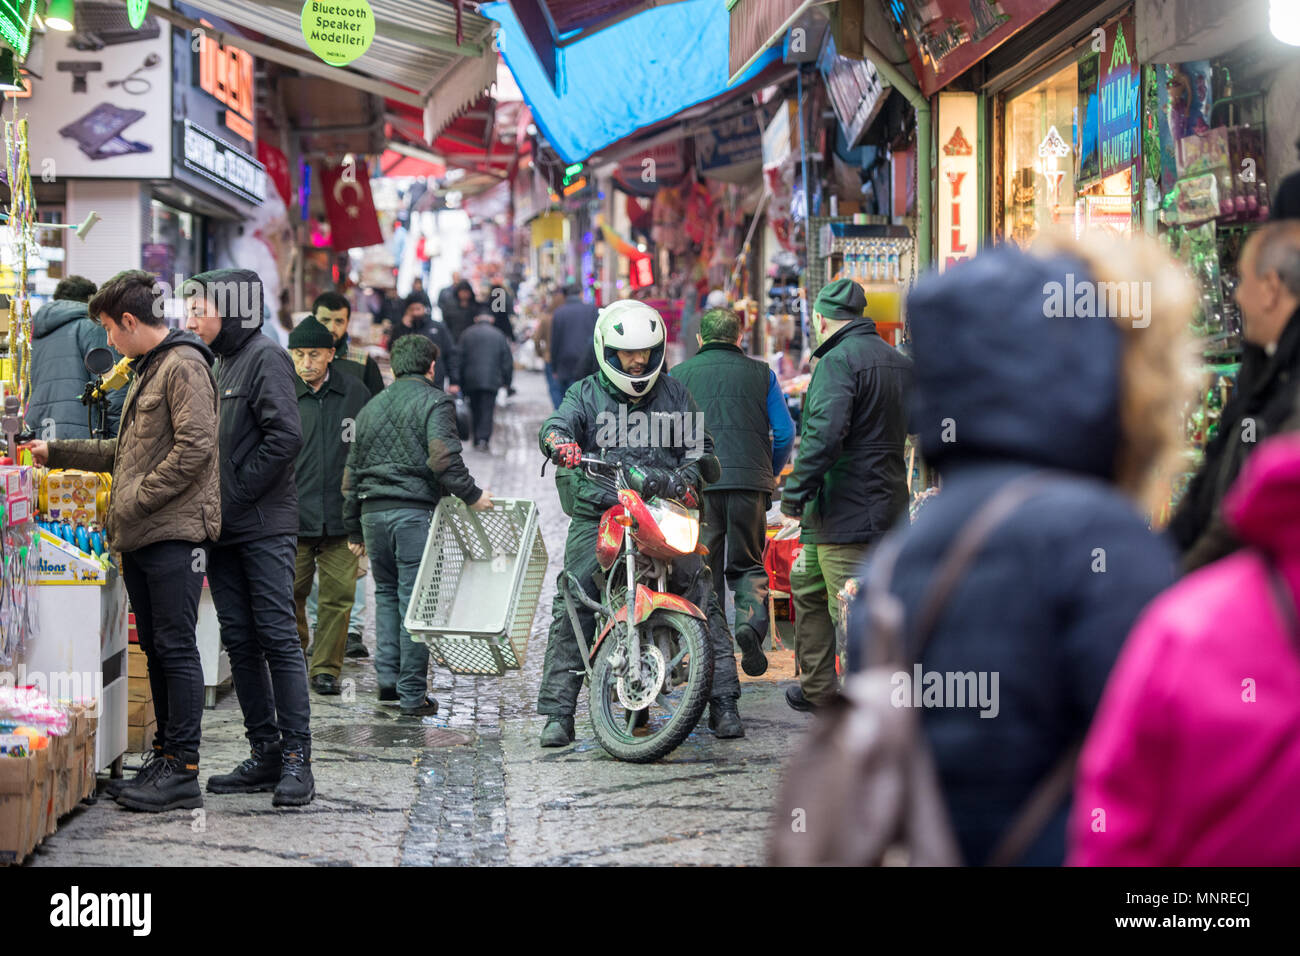 Shoppers browse goods for sale along busy narrow street of outdoor marketplace as a man with a motorcycle tries to make his way through, Istanbul, Tur Stock Photo